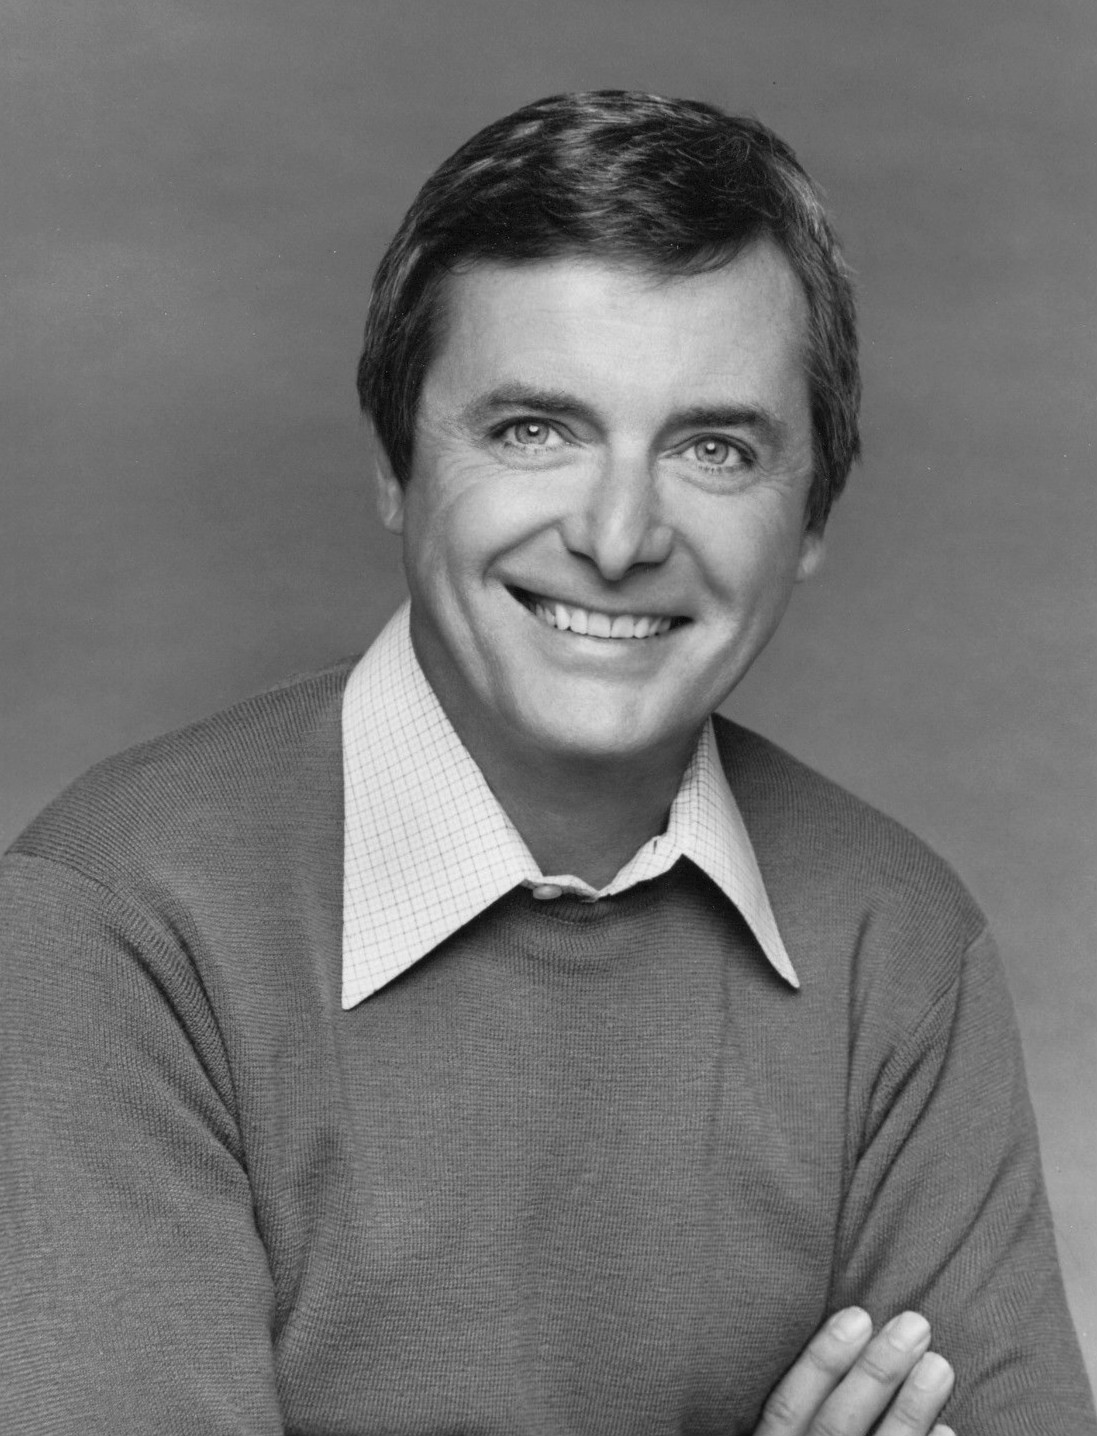 Happy 93rd Birthday William Daniels!